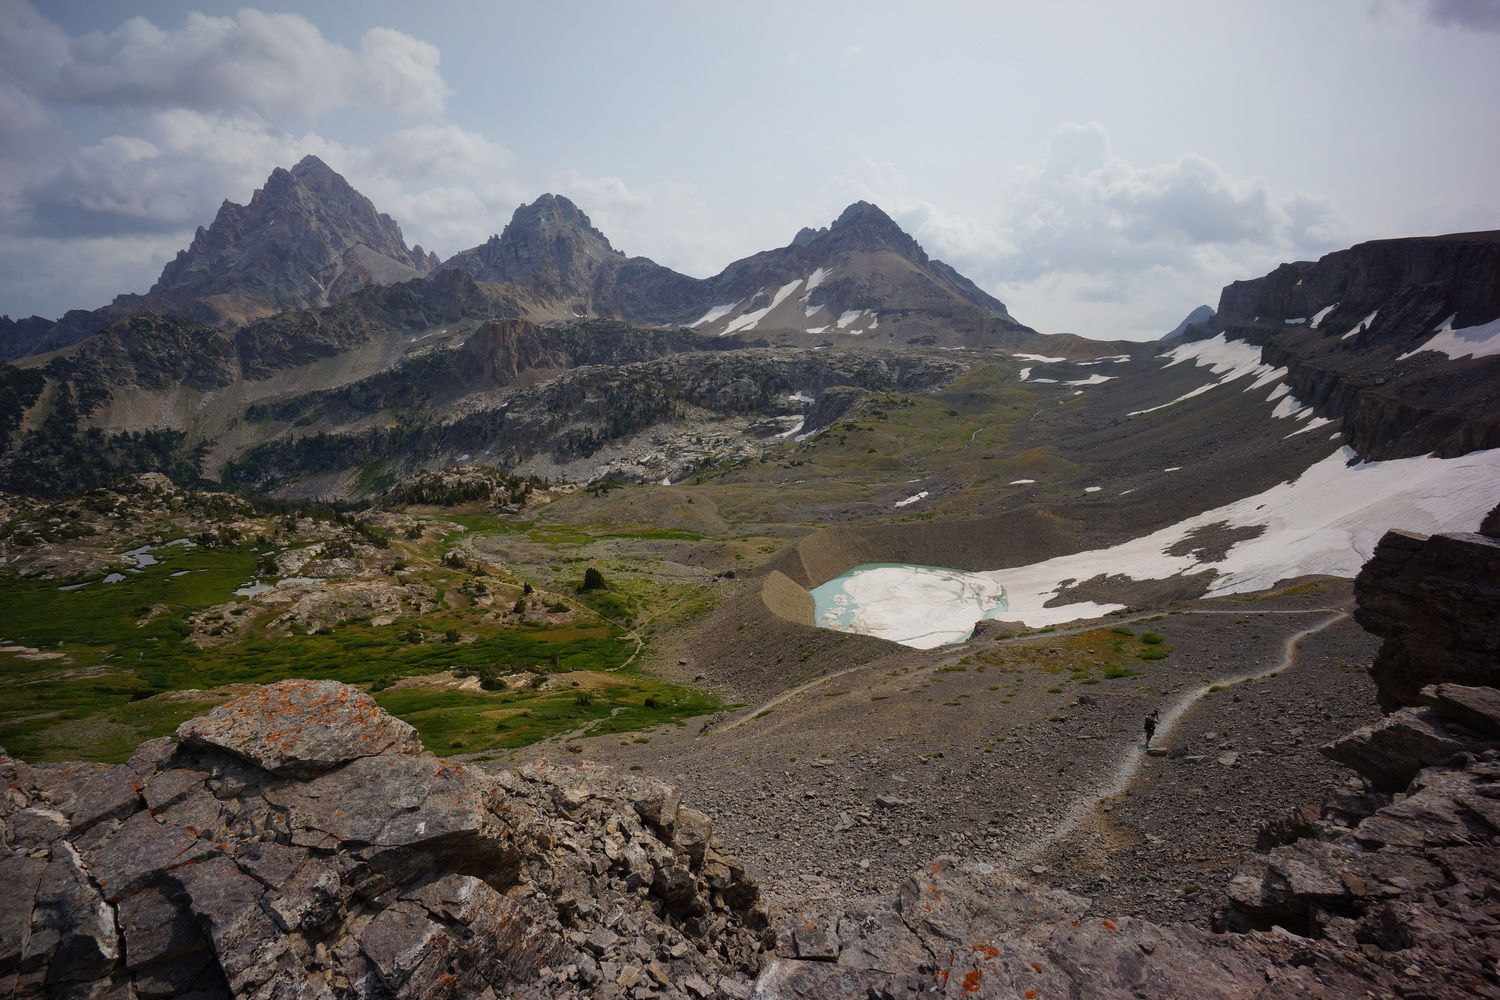 jackson to falgg ranch, teton crest trail hike on the continental divide trail 2018